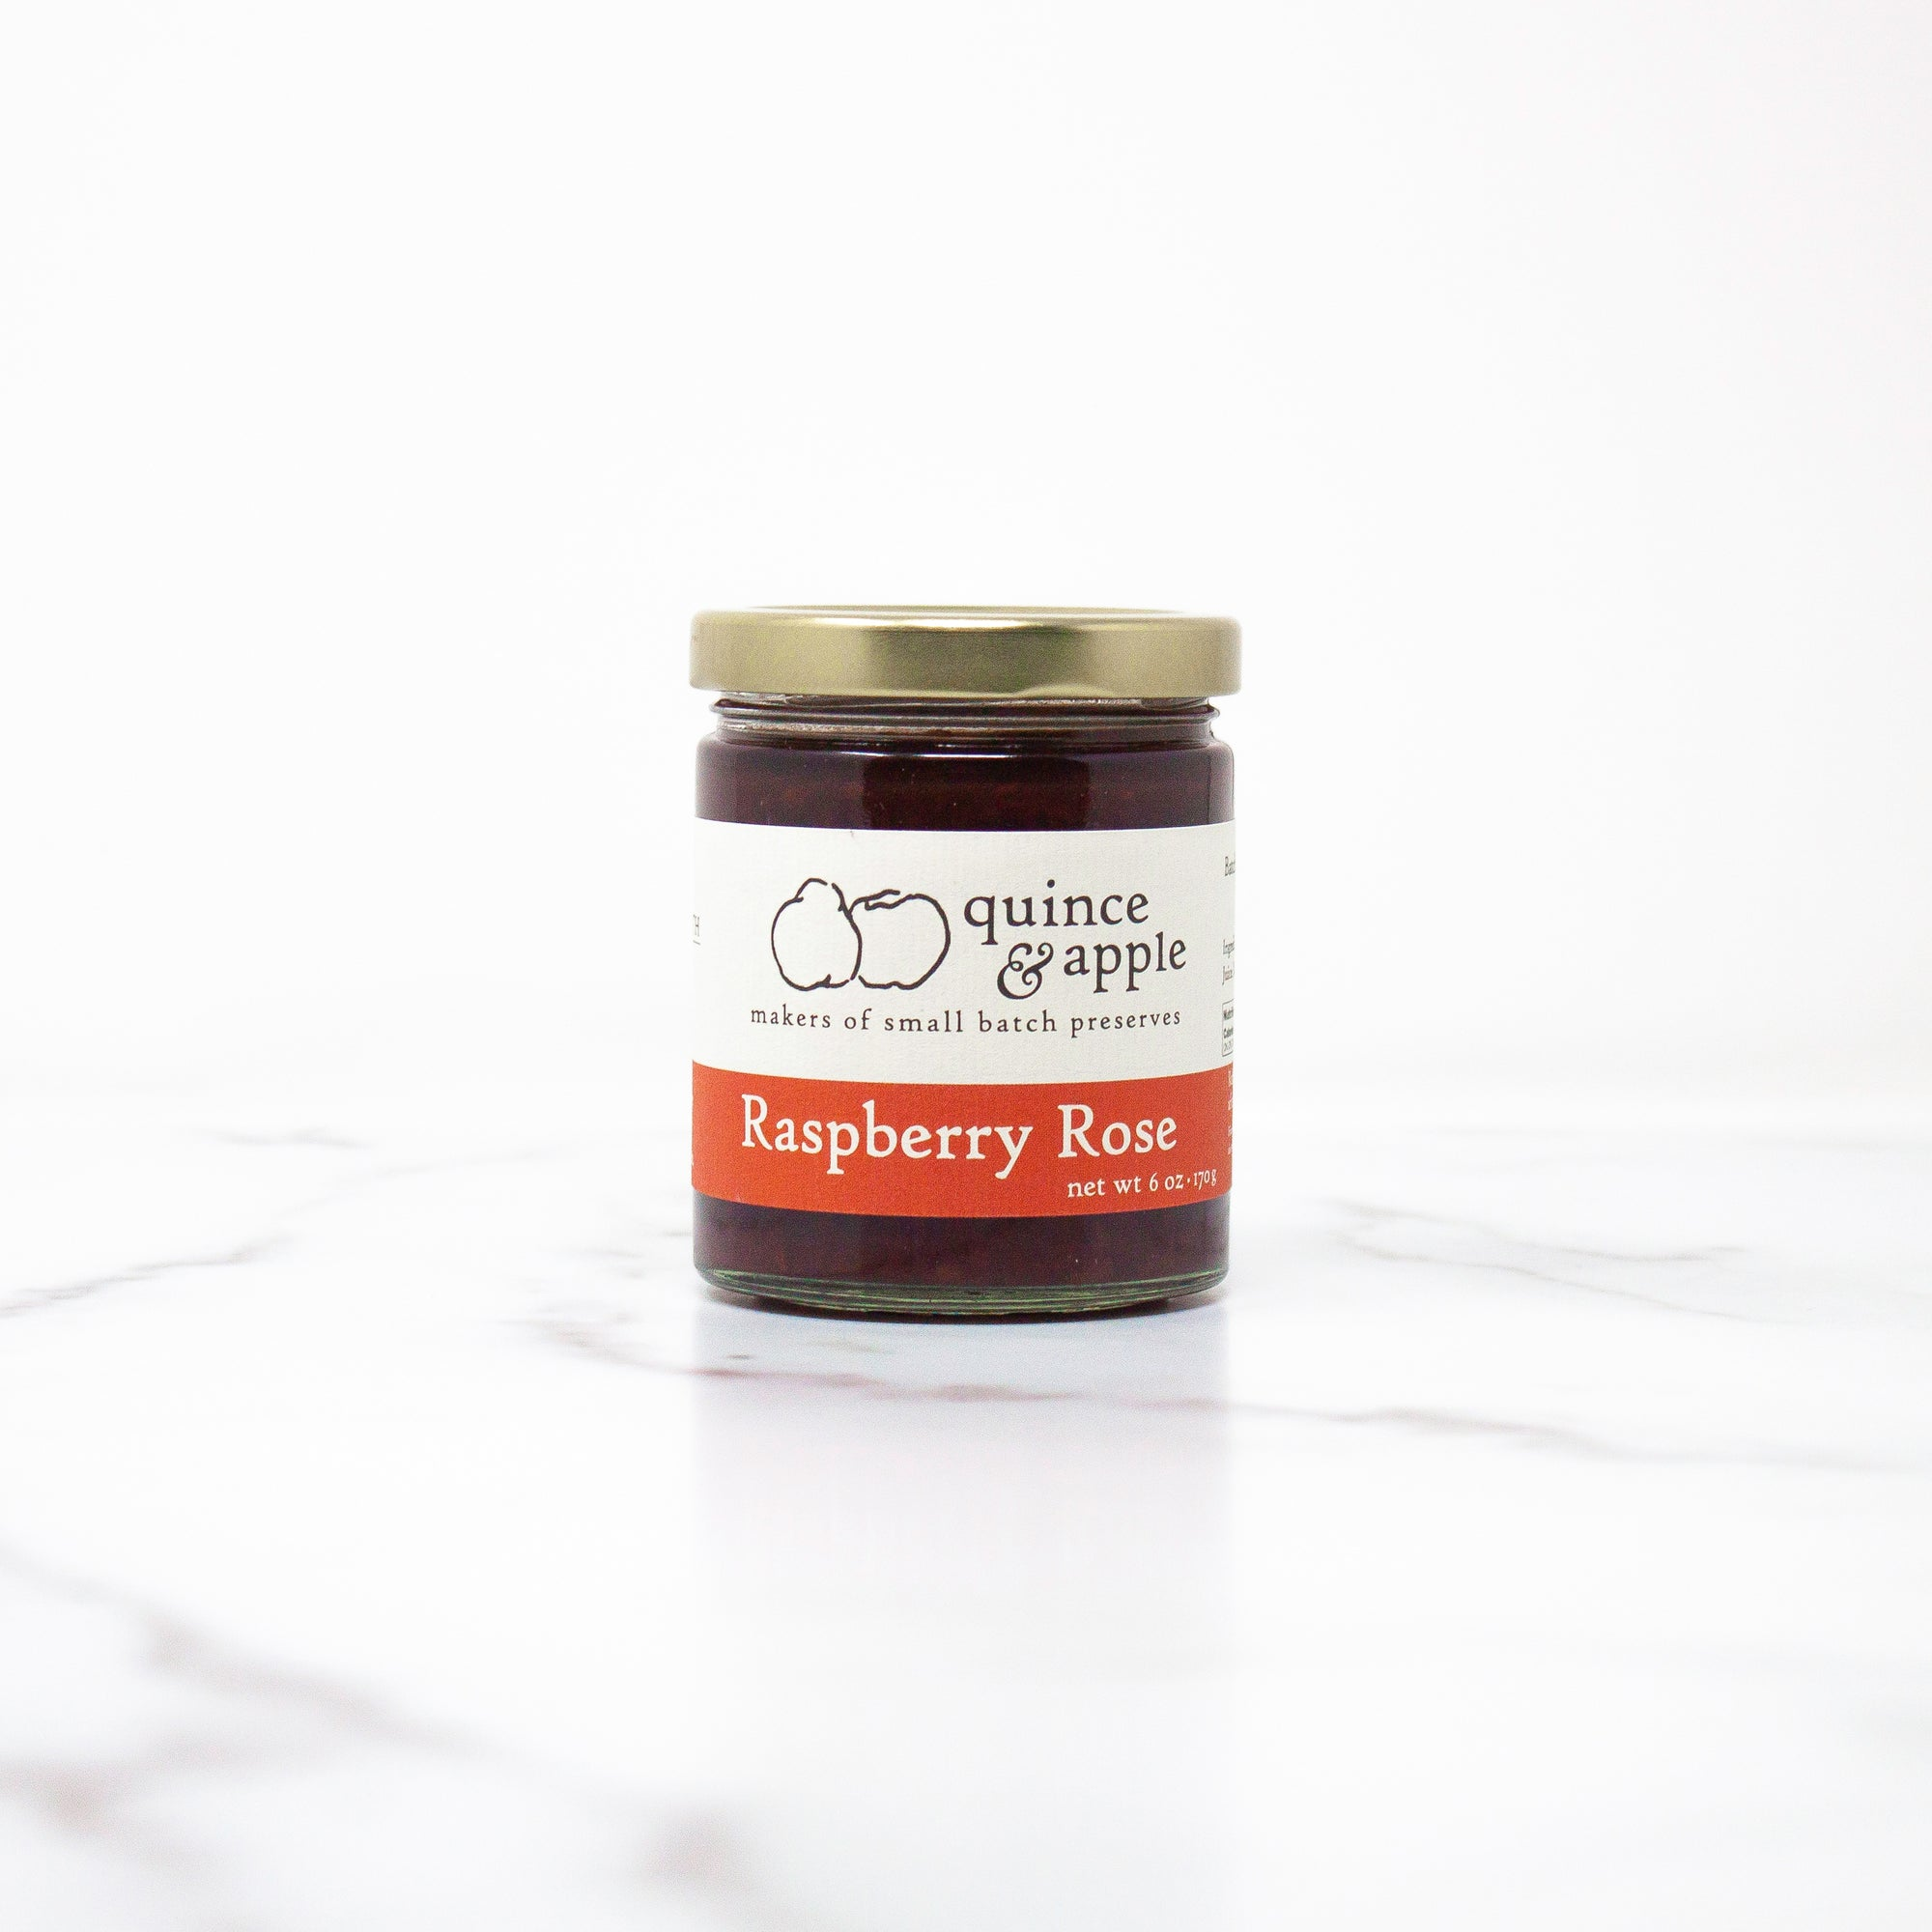 Raspberry Rose - gourmet raspberry jam infused with a hint of rose